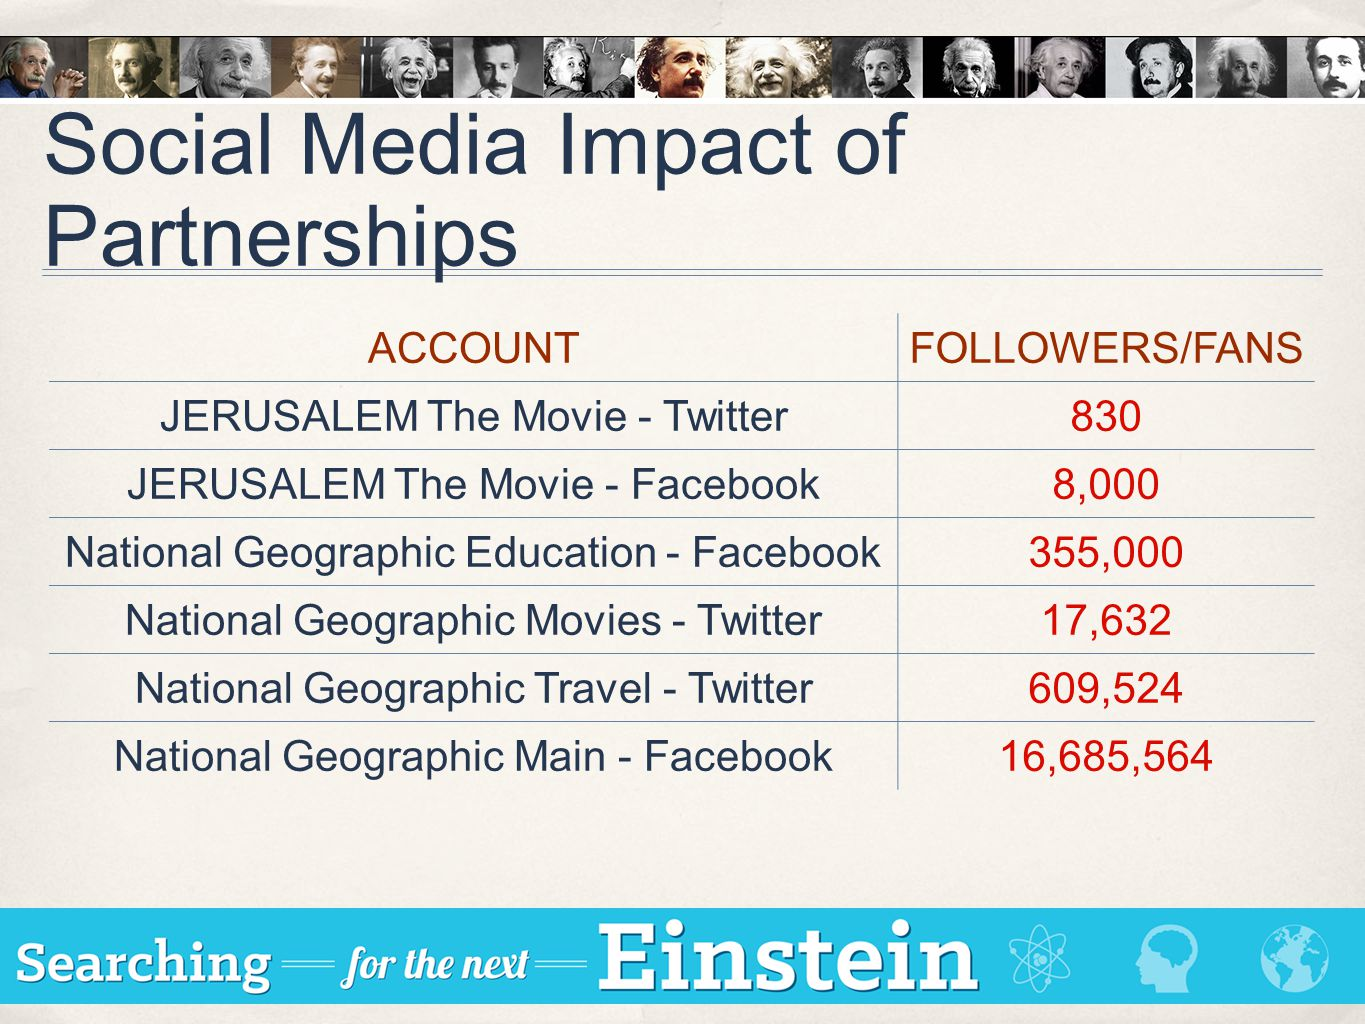 Social Media Impact of Partnerships ACCOUNTFOLLOWERS/FANS JERUSALEM The Movie - Twitter830 JERUSALEM The Movie - Facebook8,000 National Geographic Education - Facebook355,000 National Geographic Movies - Twitter17,632 National Geographic Travel - Twitter609,524 National Geographic Main - Facebook16,685,564